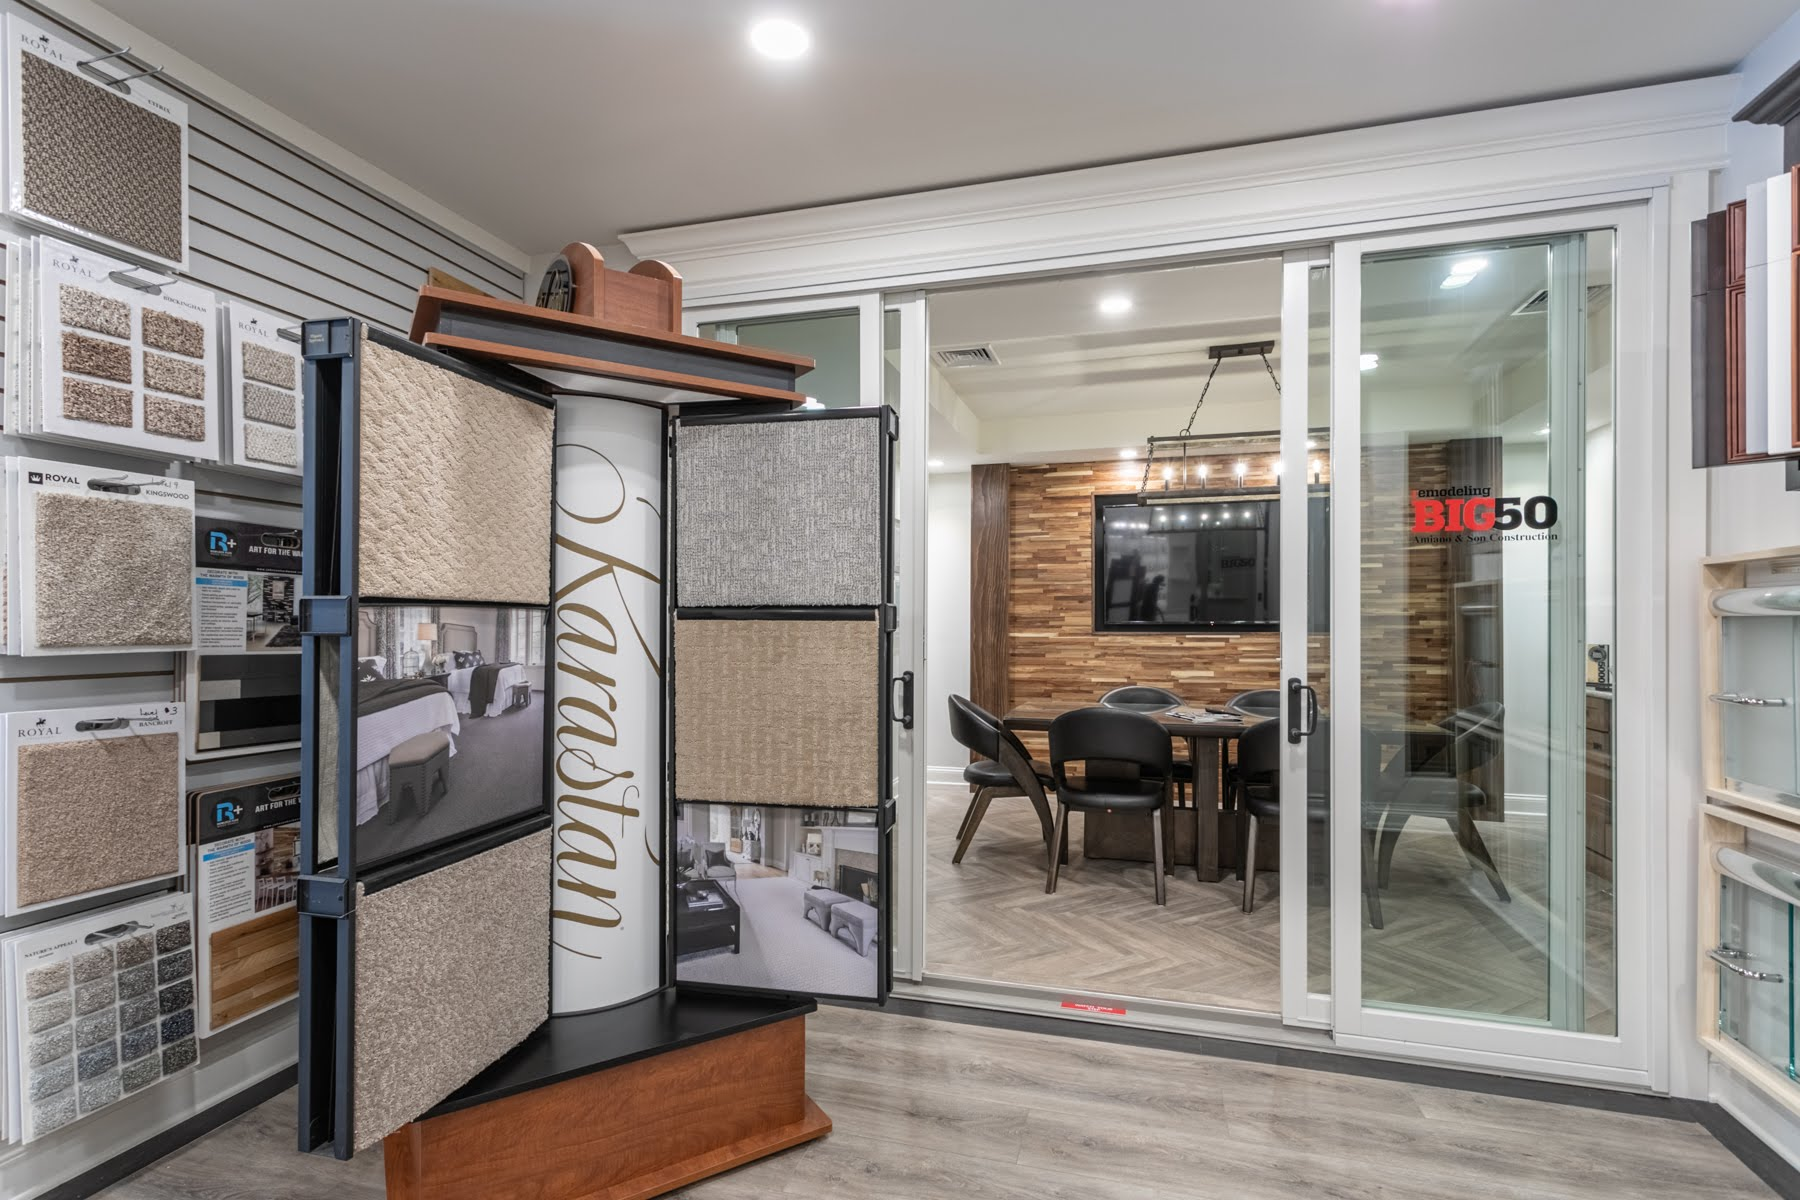 South Jersey Remodeling Showroom   Amiano & Son Construction